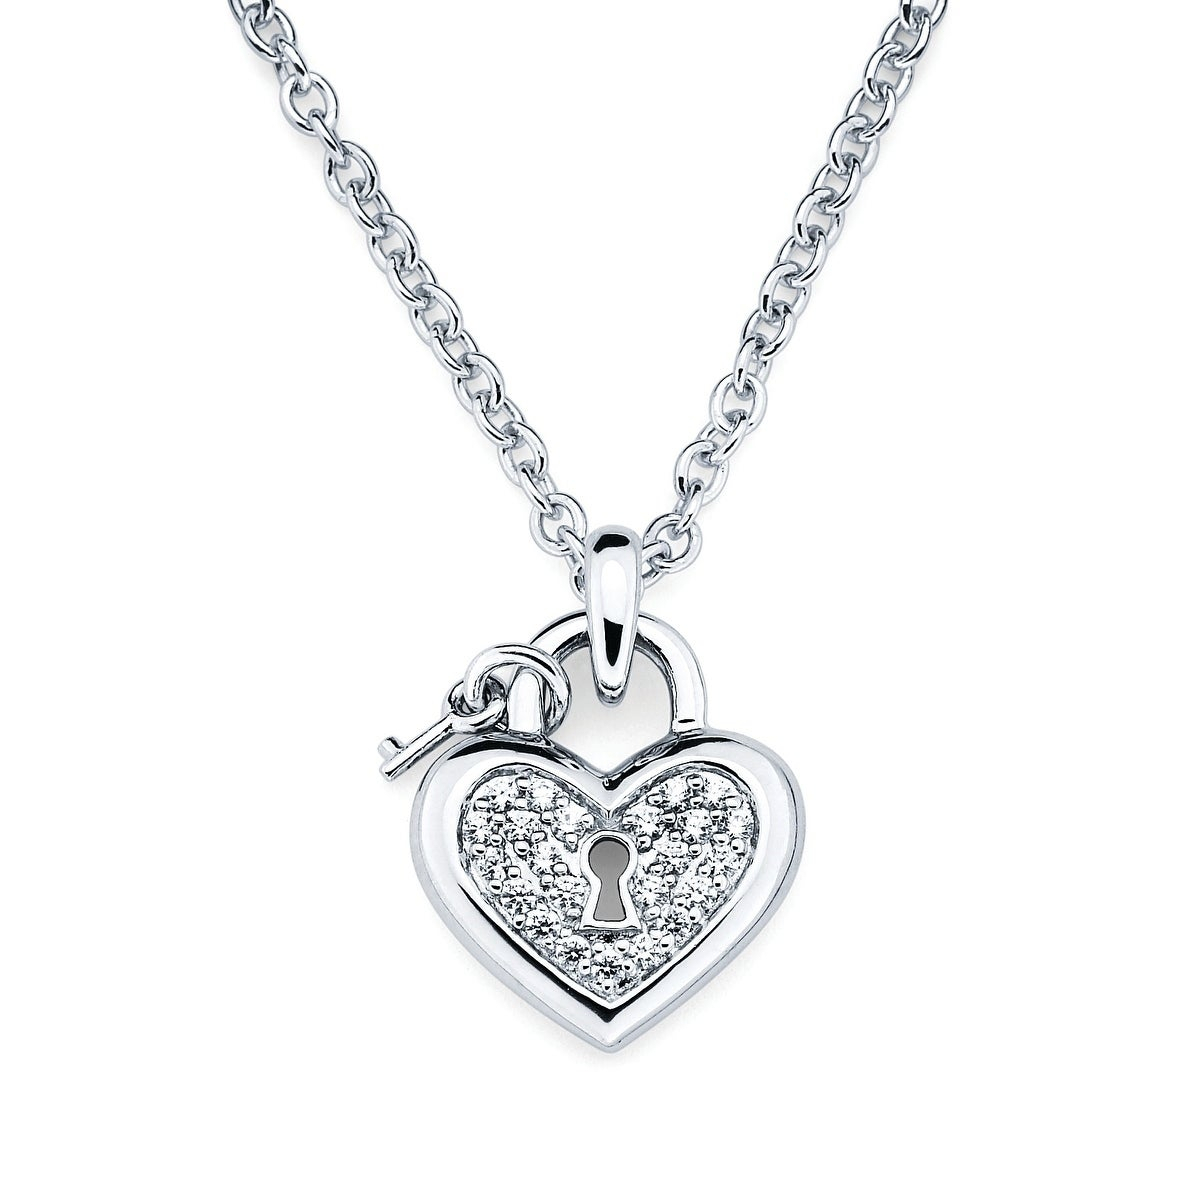 "Sterling Silver Heart Lock And Key White Swarovski Elements Zirconia Charm Necklace With 17"" Rolo Chain Intended For Recent Heart Padlock Locket Element Necklaces (View 8 of 25)"